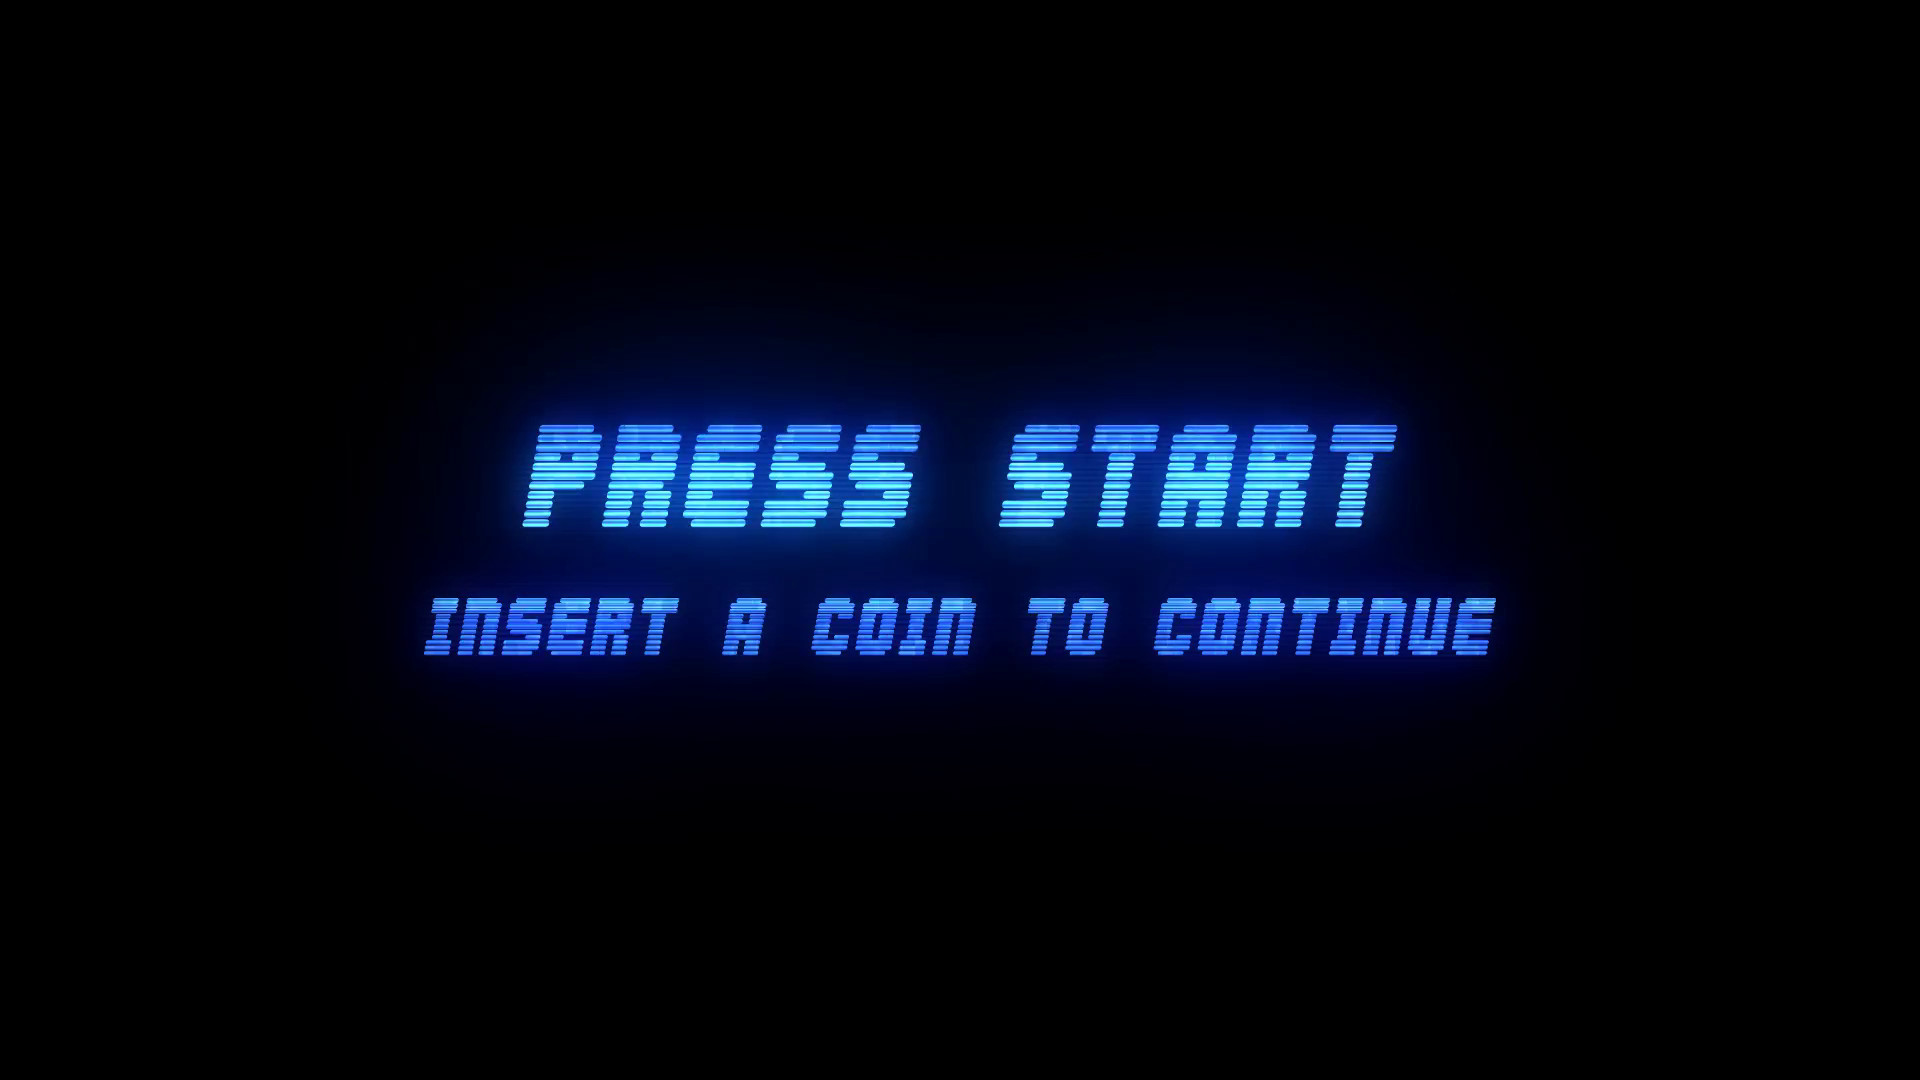 Res: 1920x1080, PRESS START - INSERT A COIN TO CONTINUE - RETRO ARCADE style 4 Motion  Background - Videoblocks